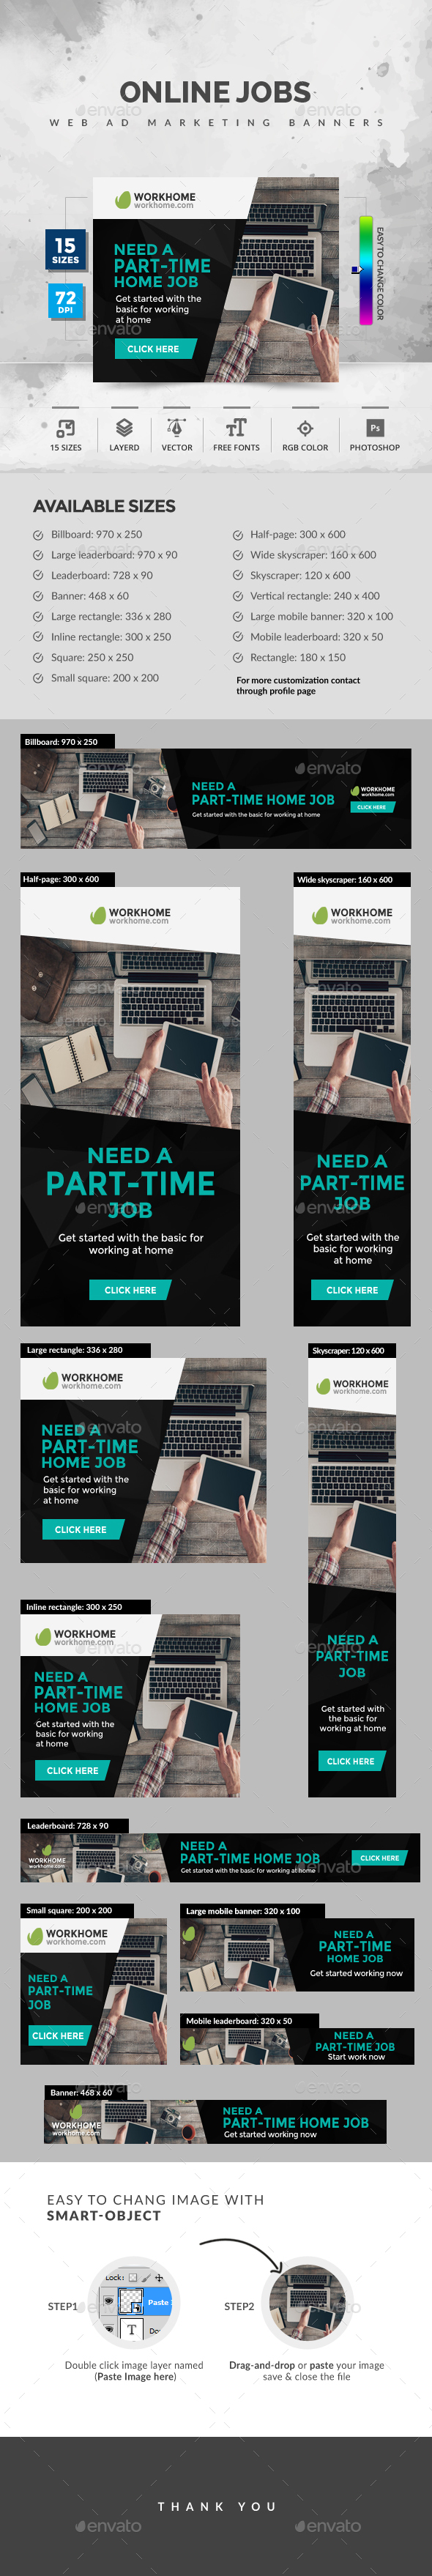 Online Jobs - Banners & Ads Web Elements